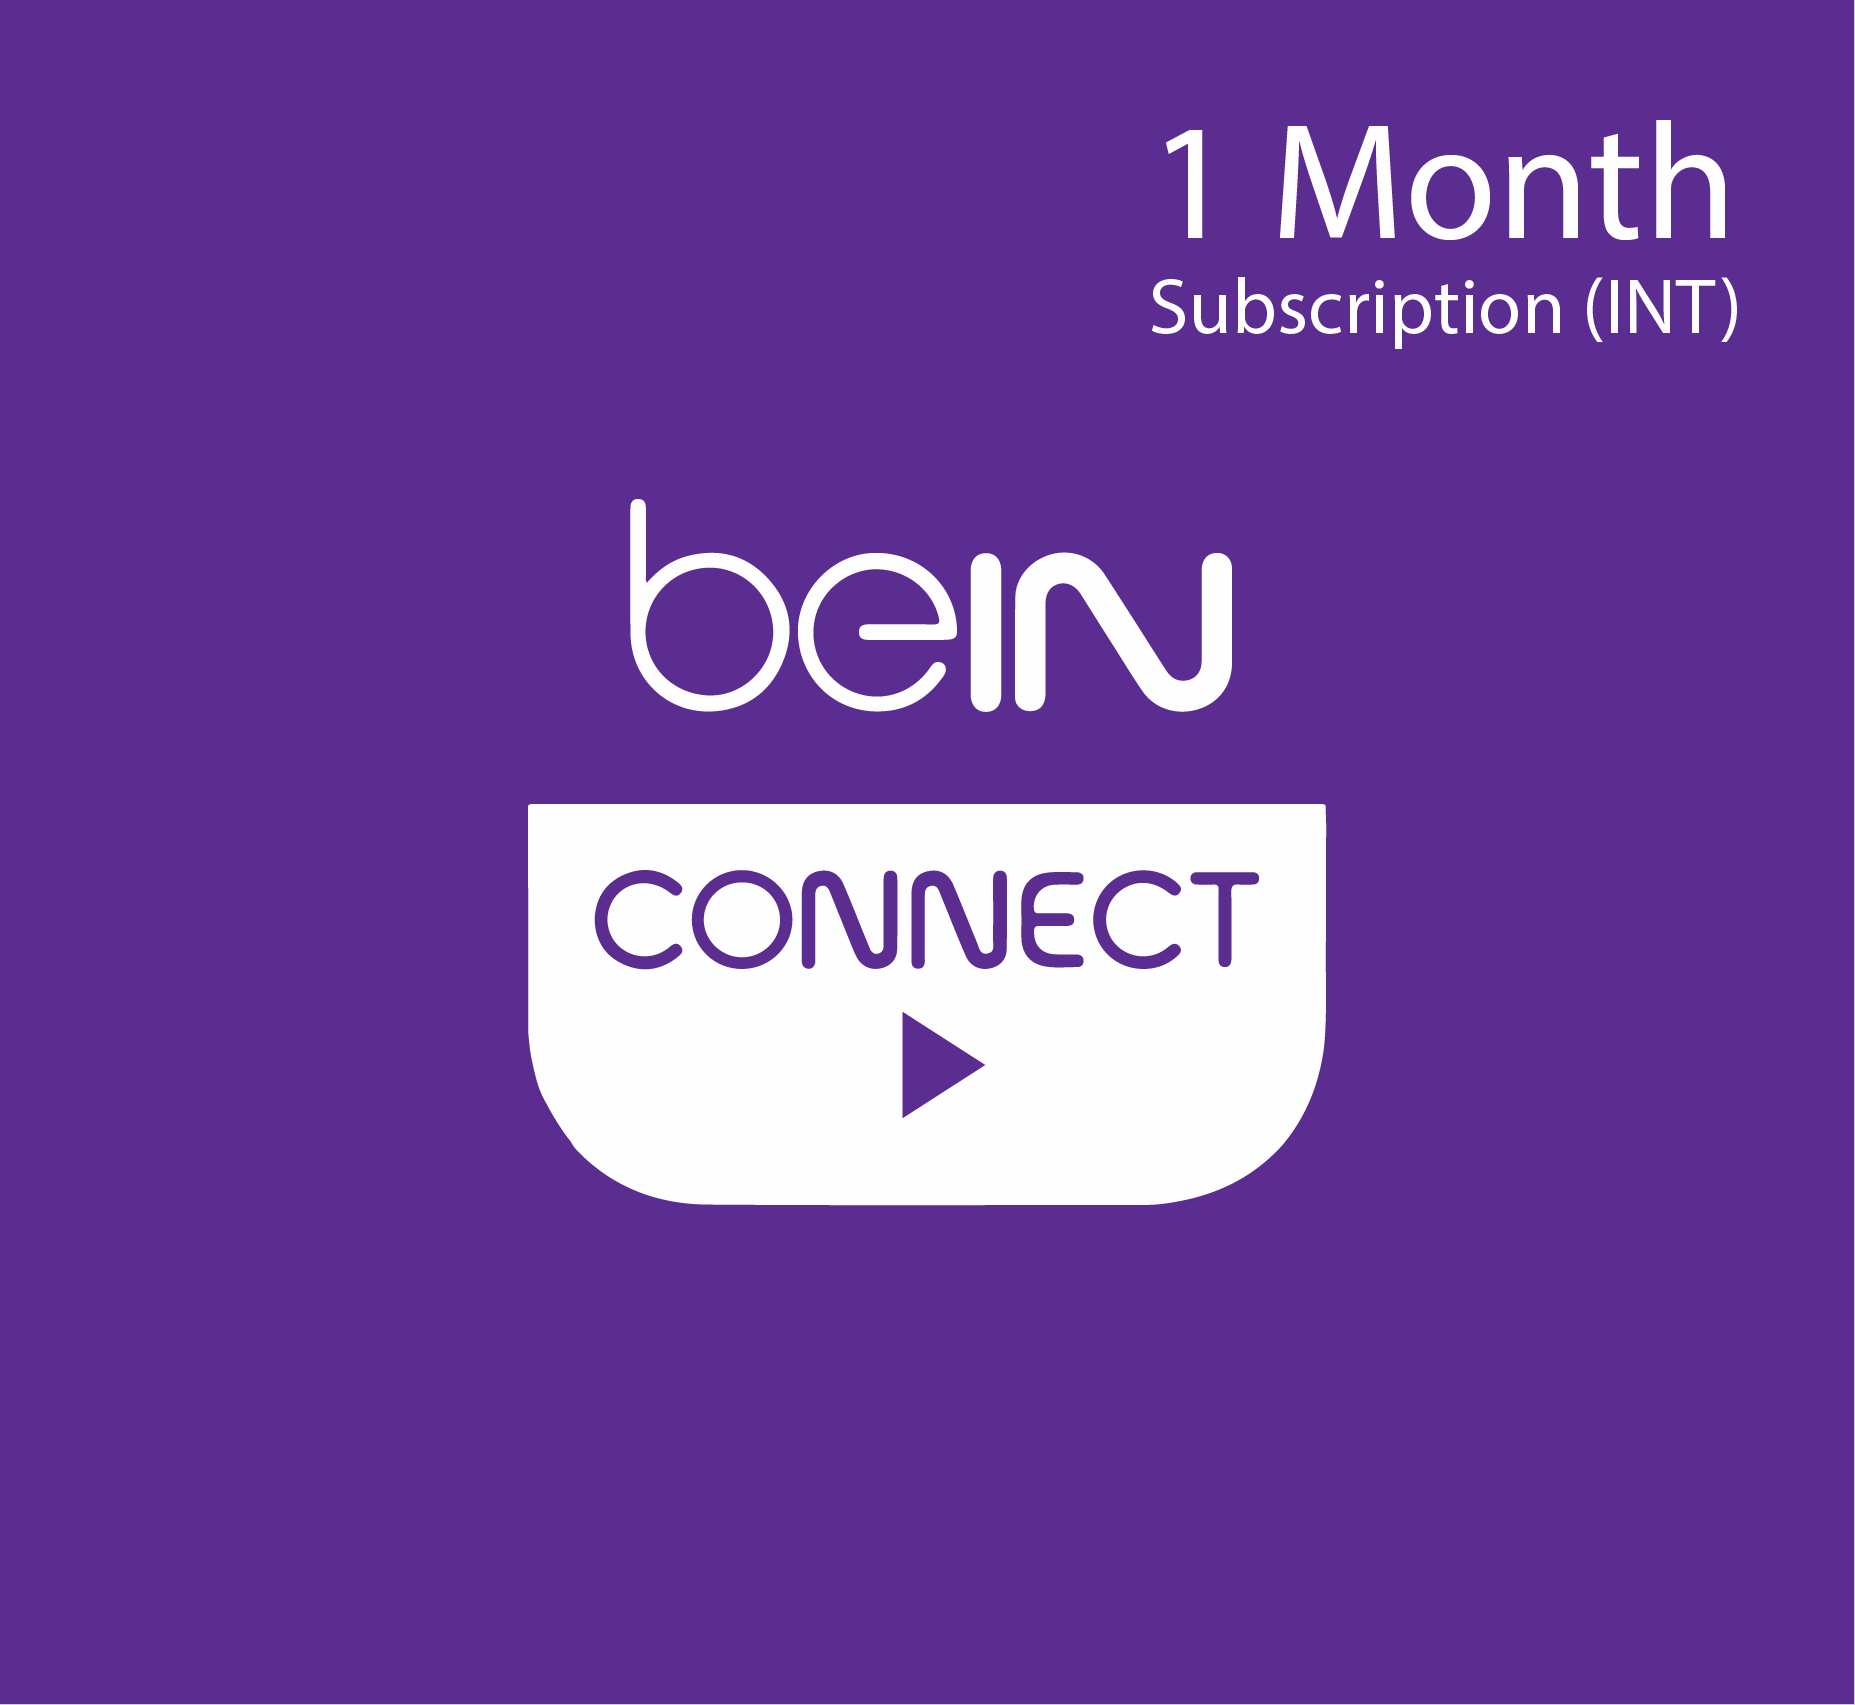 beIN Connect subscription - 1 Month (INT)